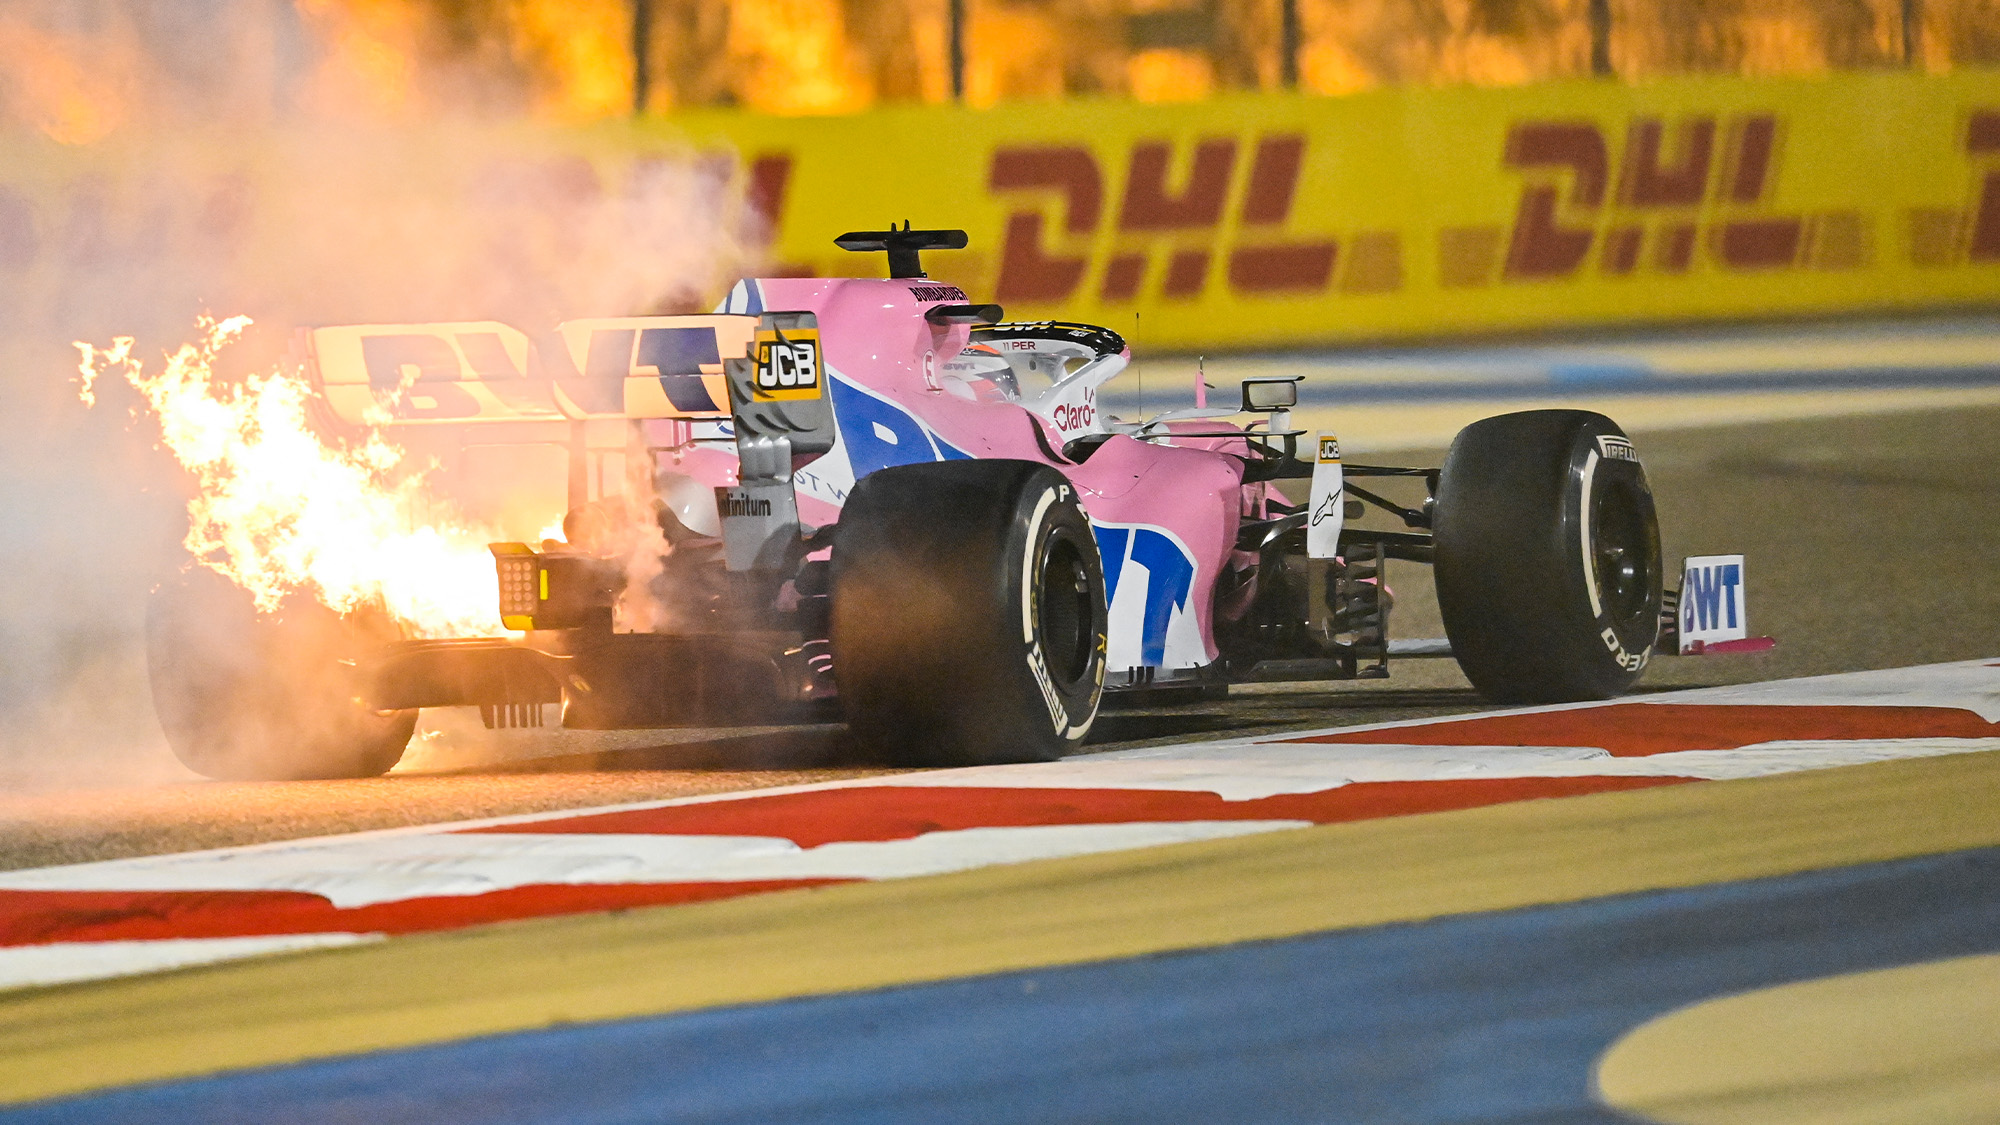 The engine on the Racing Point of Sergio Perez expires in flames at the 2020 F1 Bahrain Grand prix